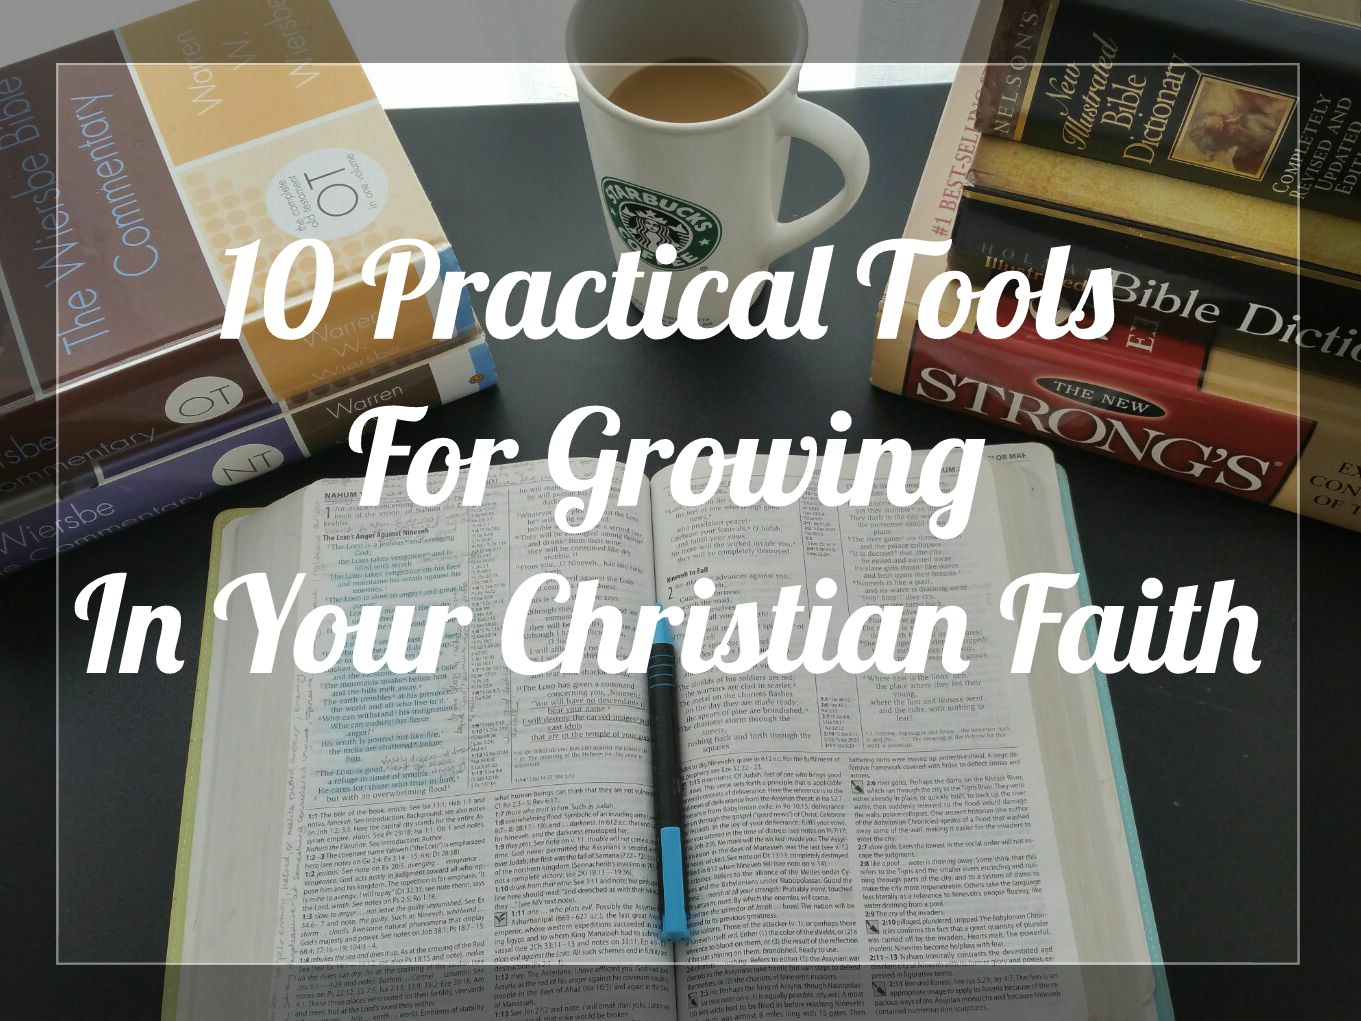 10 Practical Tools For Growing In Your Christian Faith